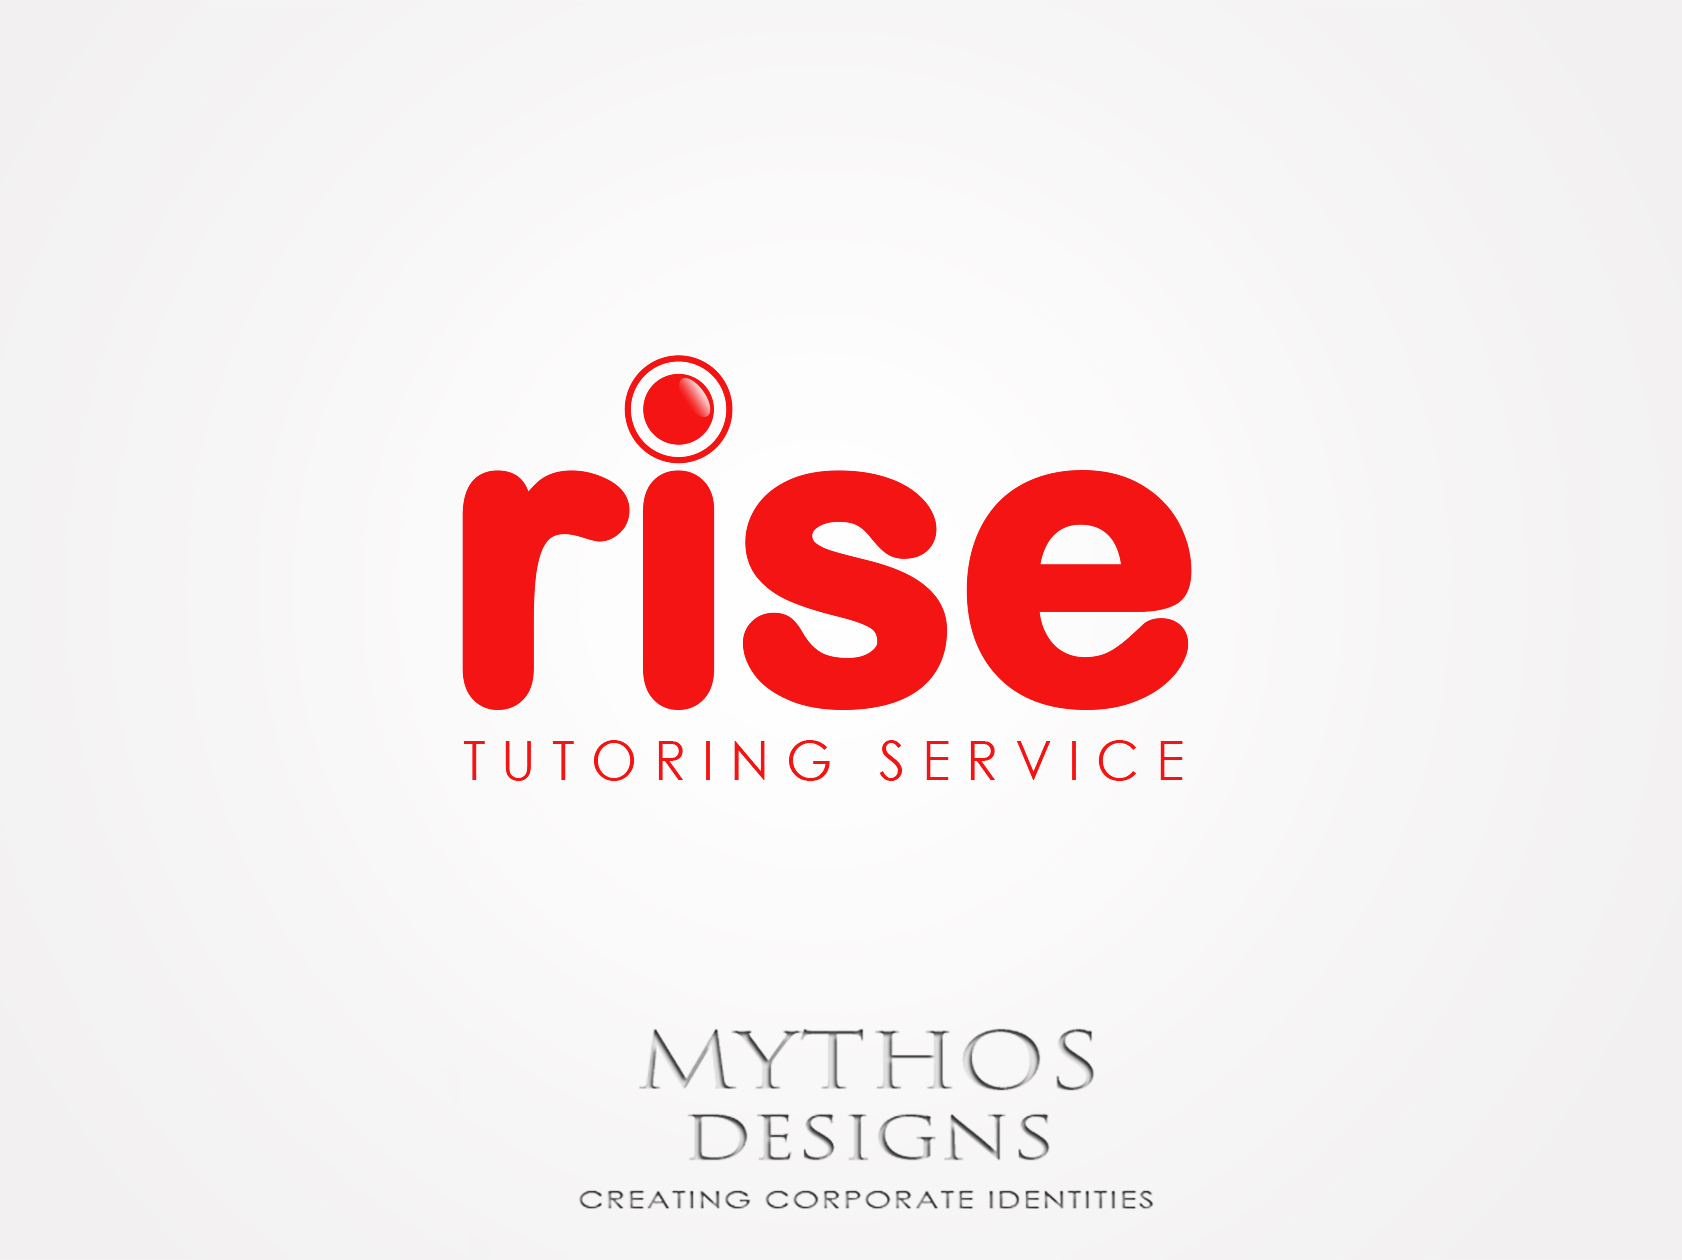 Logo Design by Mythos Designs - Entry No. 246 in the Logo Design Contest Imaginative Logo Design for Rise Tutoring Service.